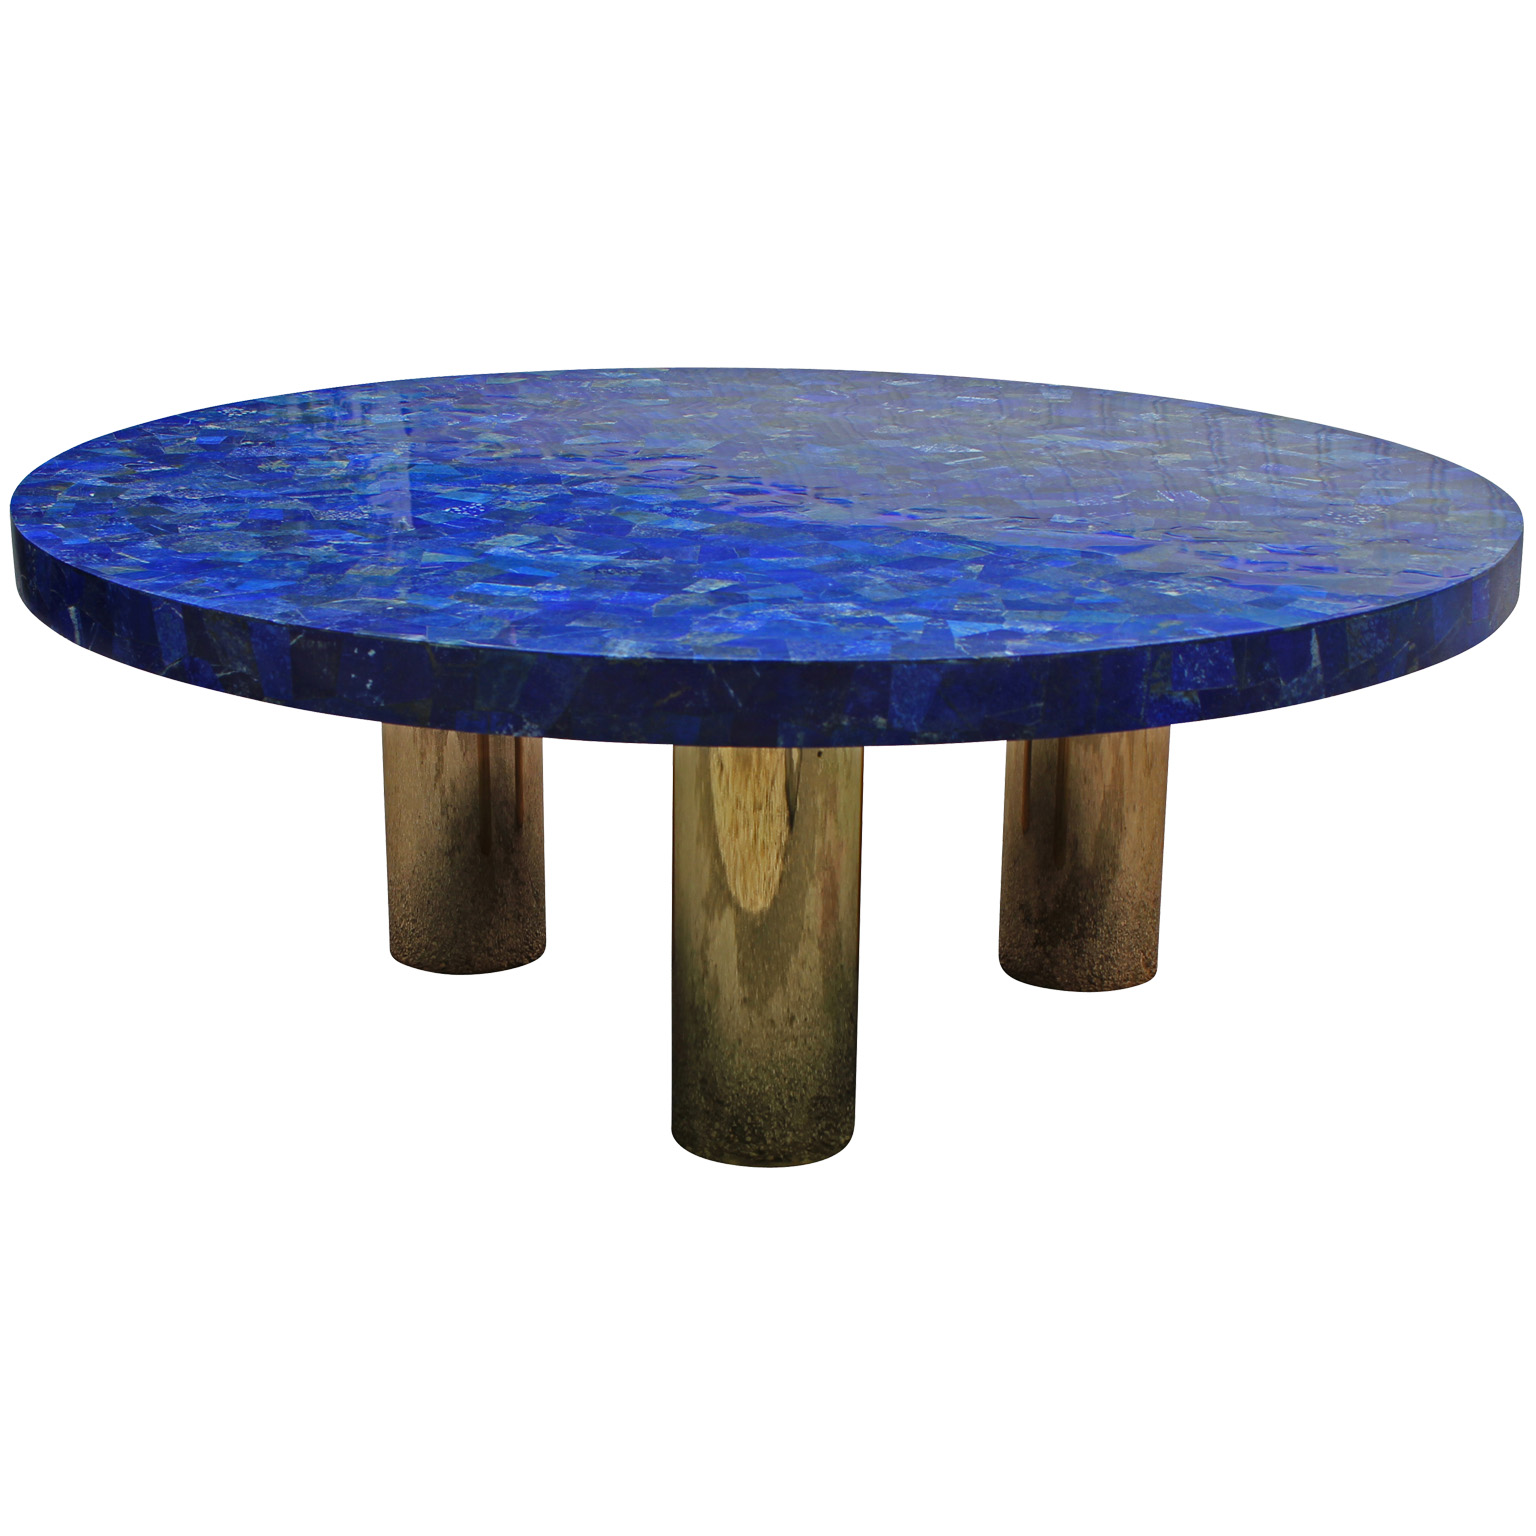 Large lucite chrome and brass coffee table at 1stdibs - Breathtaking Blue Lapis Lazuli Table With Polish Brass Legs